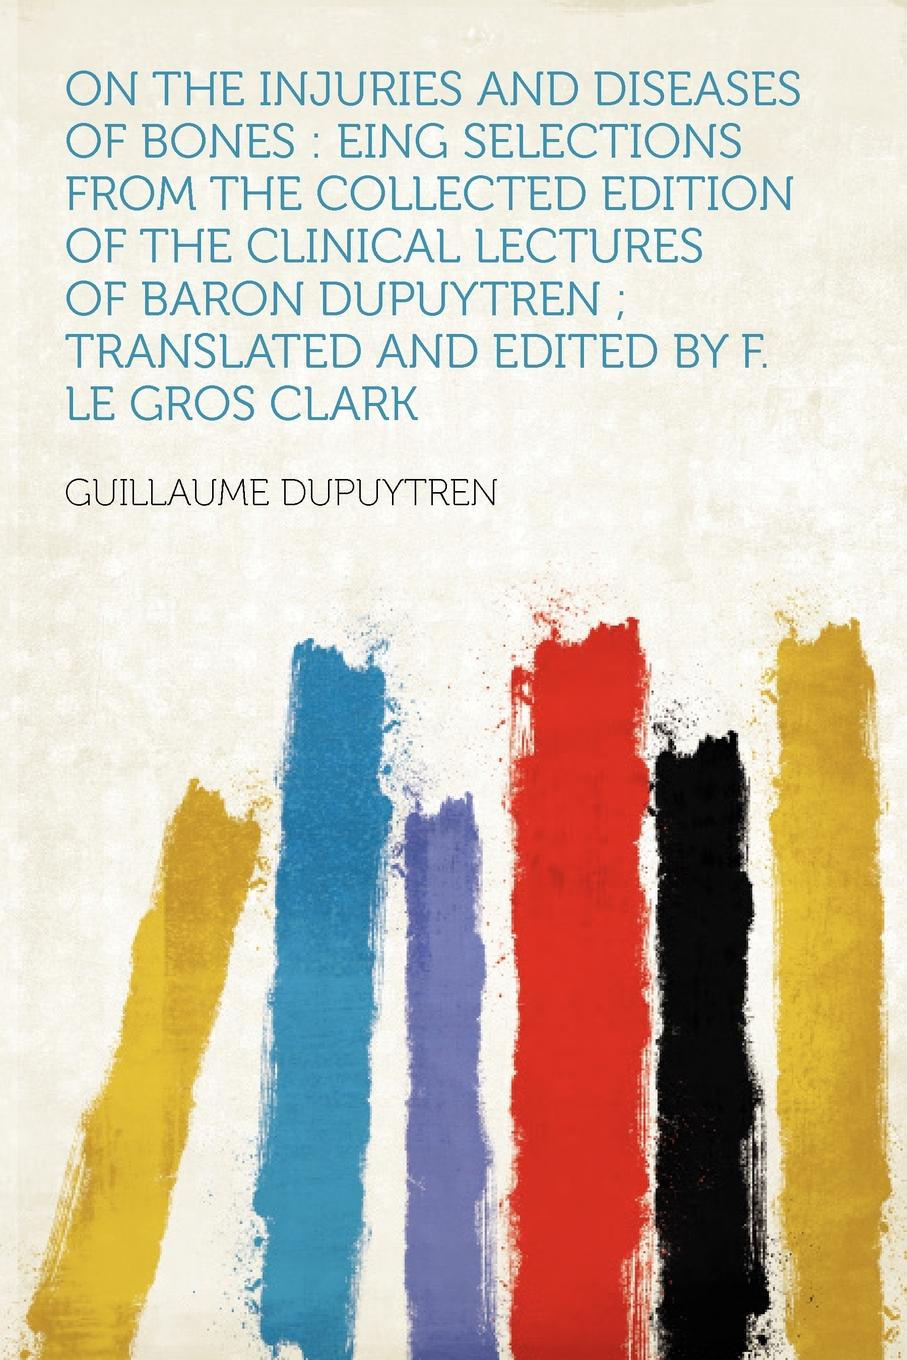 On the Injuries and Diseases of Bones. Eing Selections From Collected Edition Clinical Lectures Baron Dupuytren ; Translated Edited by F. Le Gros Clark